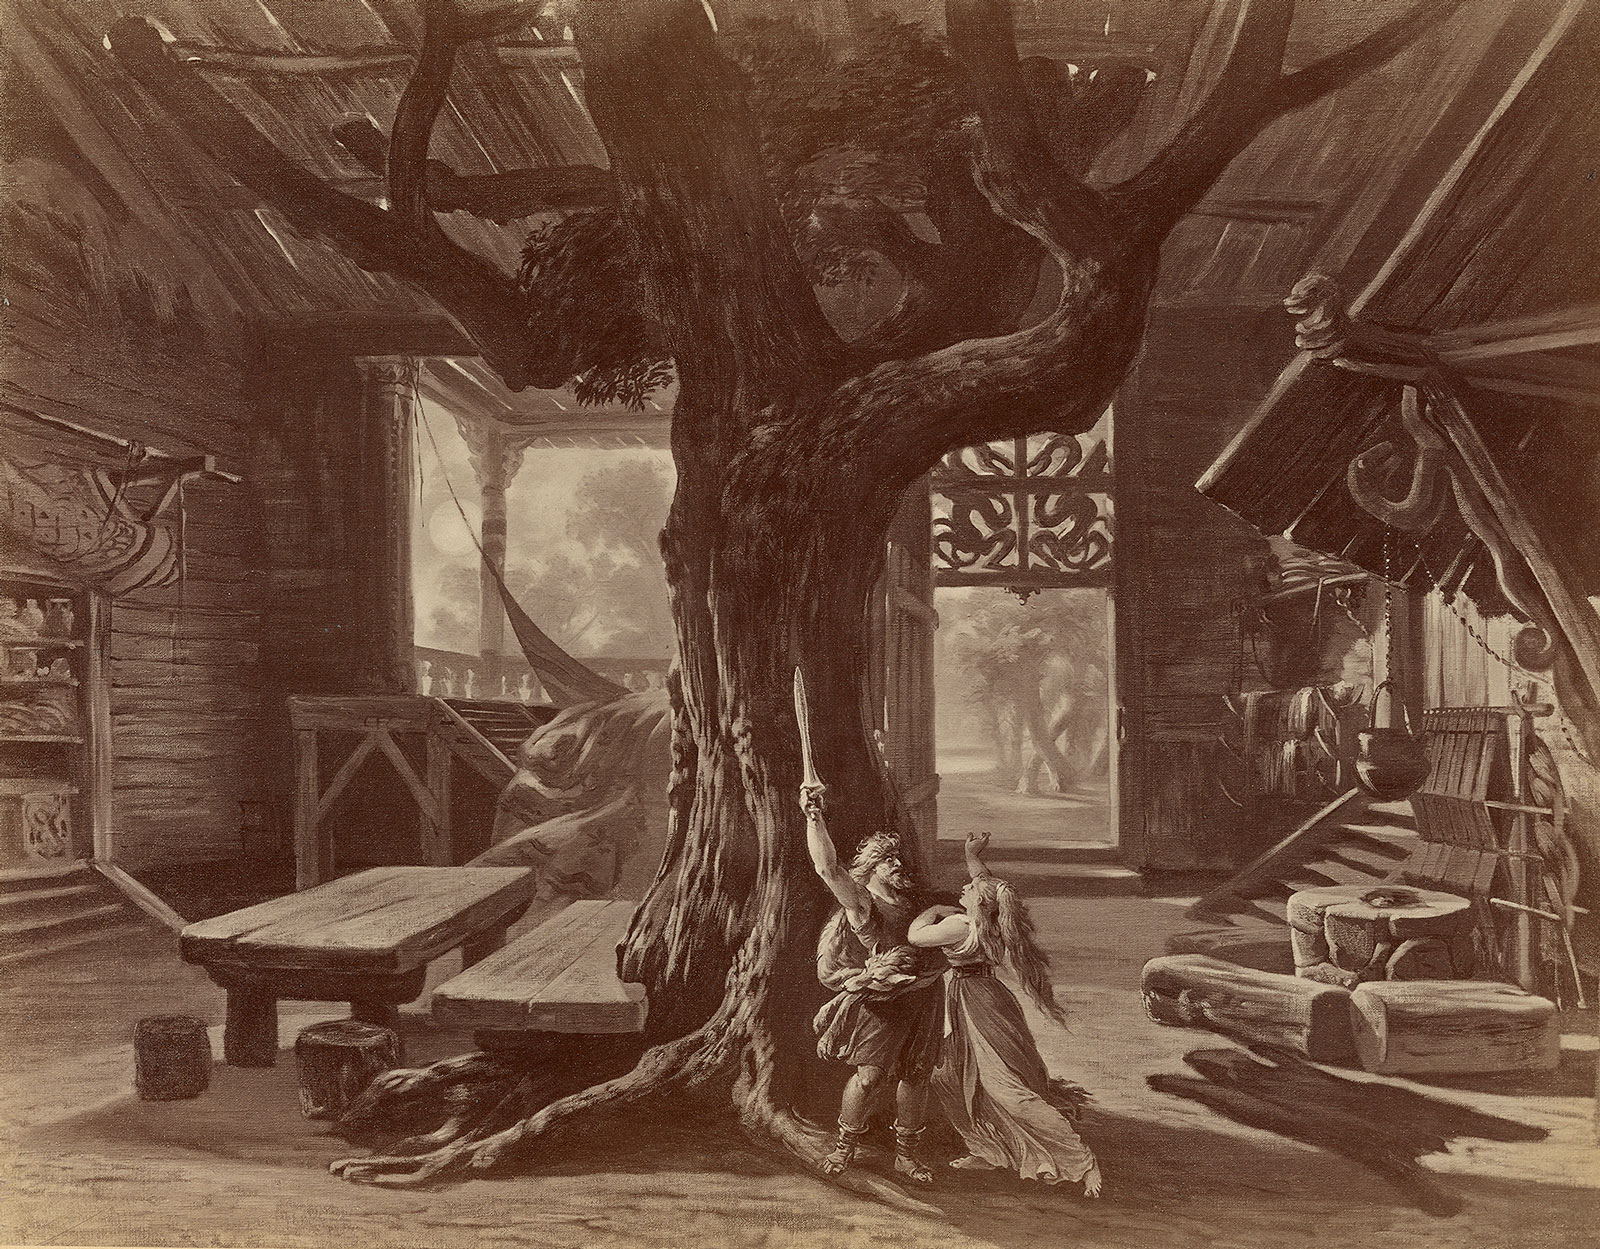 A stage design for Die Walküre, Act 1. Vienna: V. Angerer, by Joseph Hoffmann, circa 1878